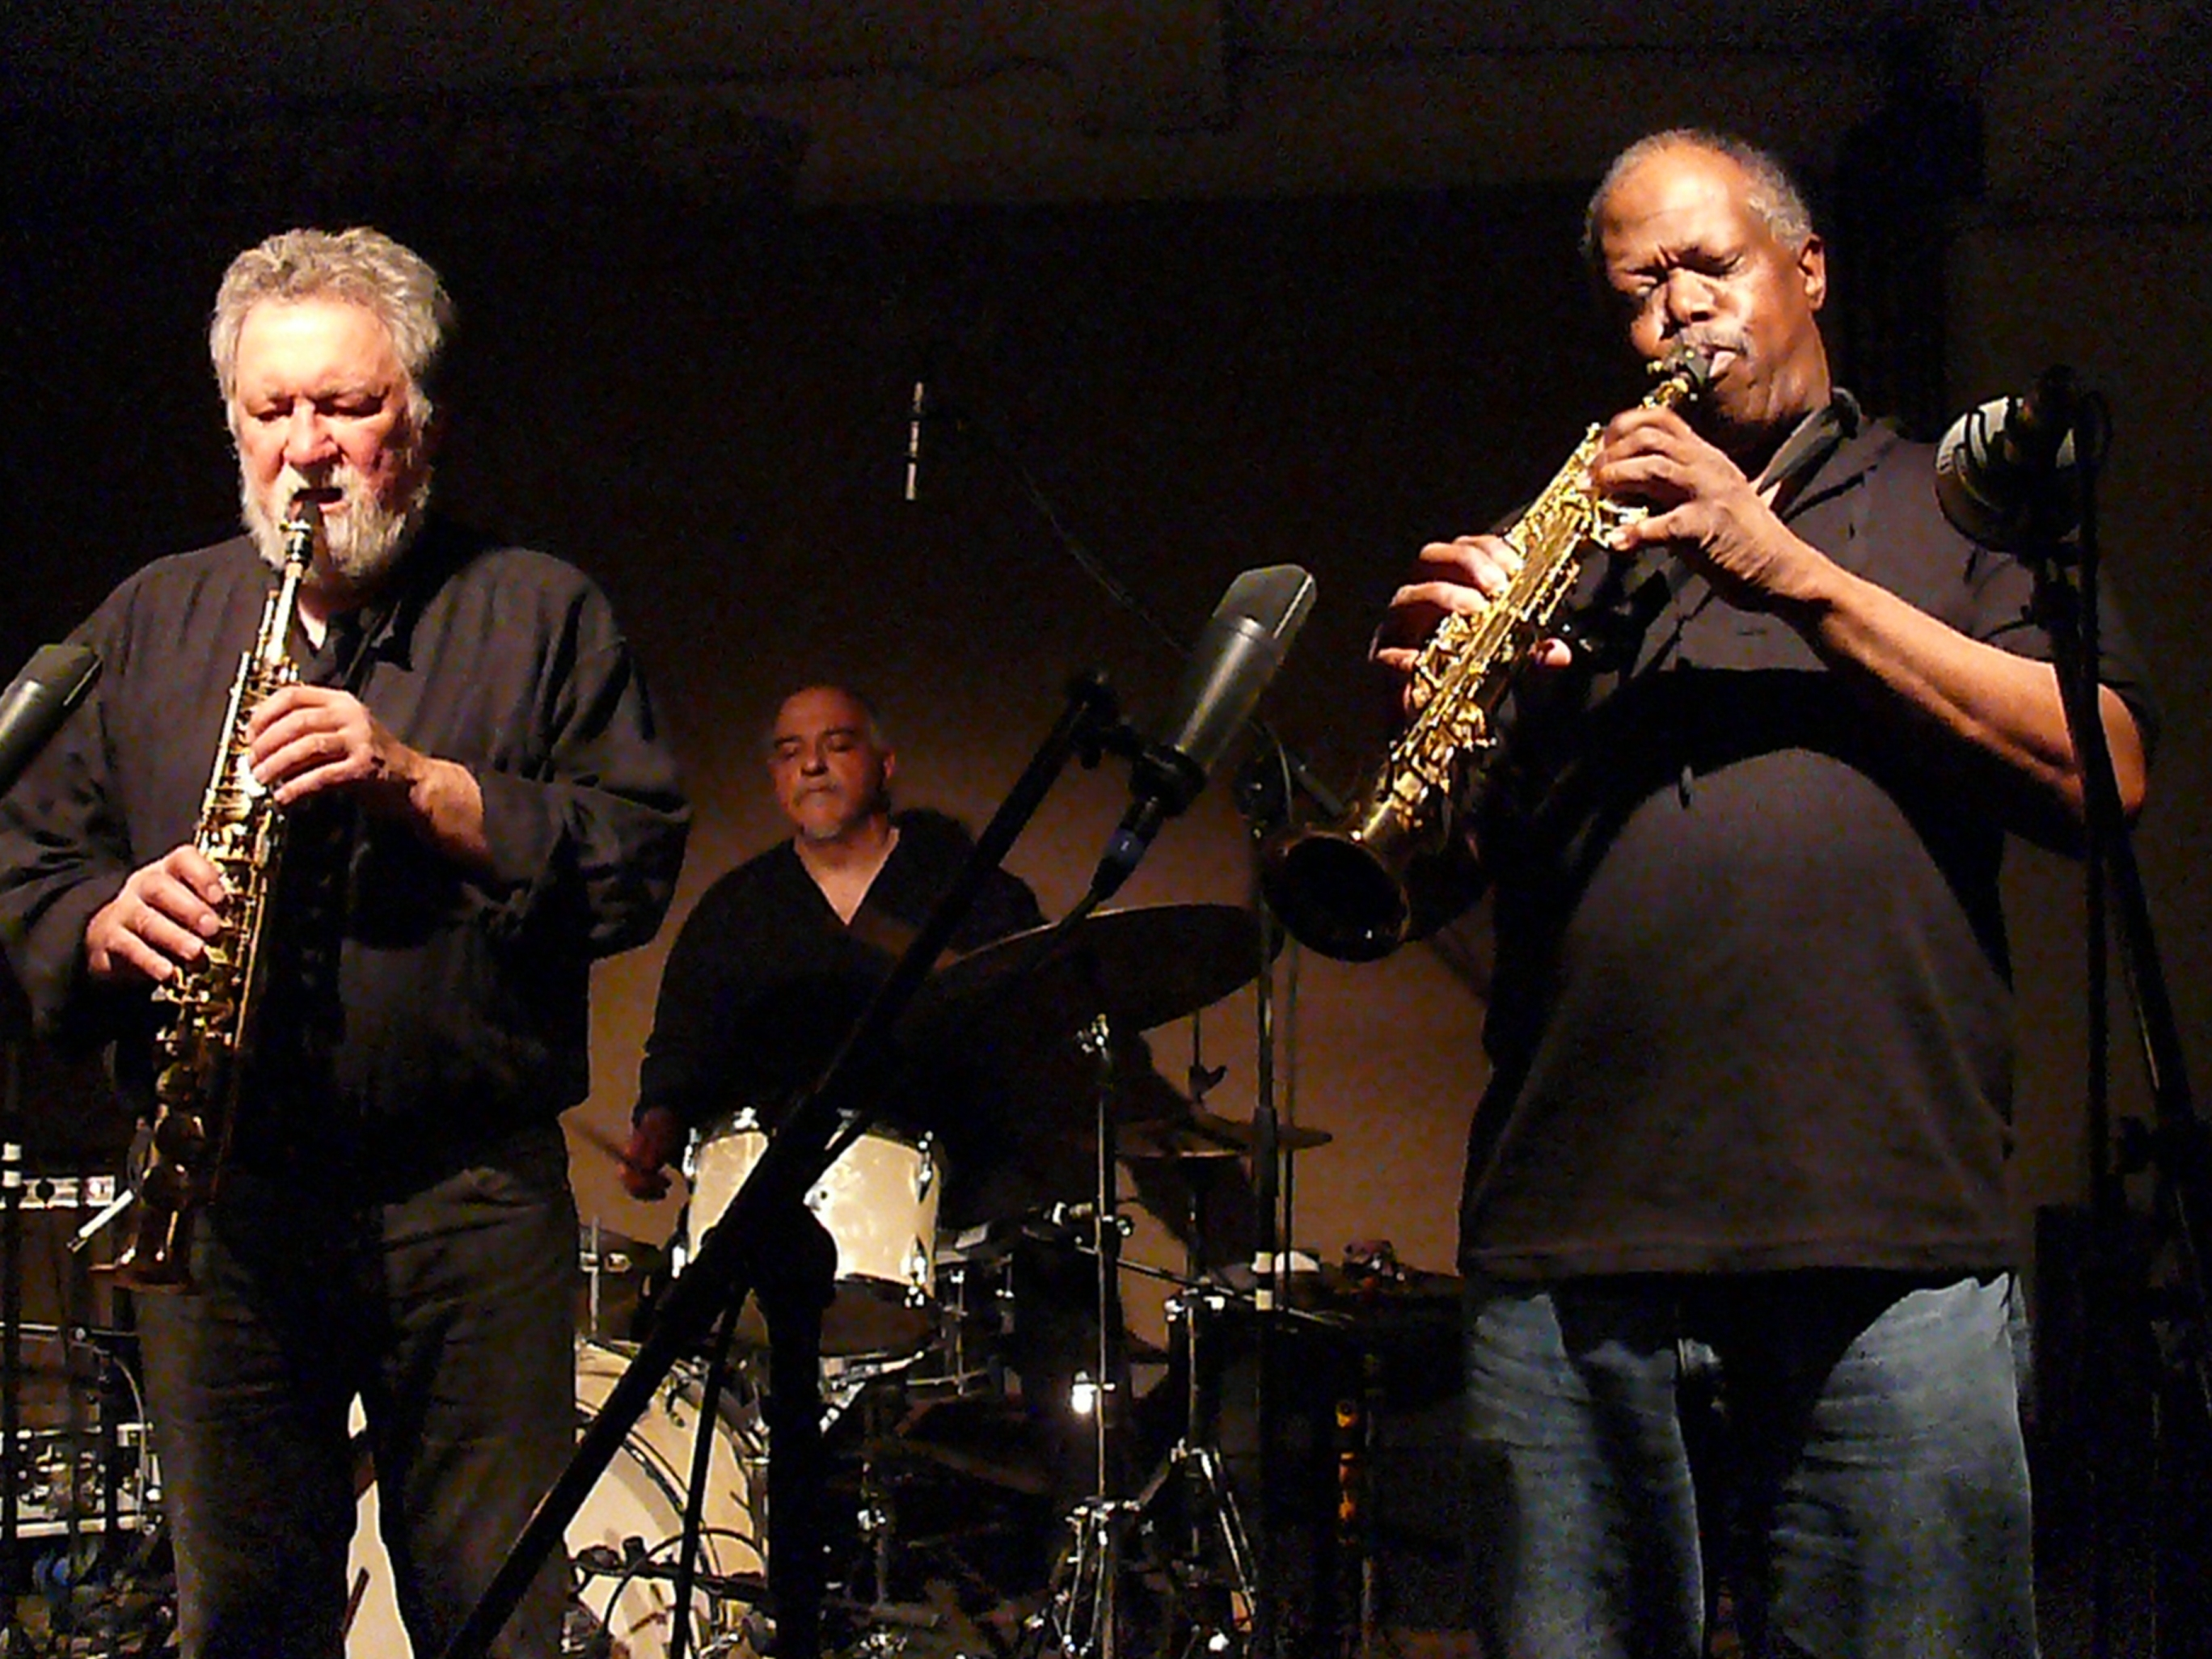 Evan Parker, Michael Zerang and Joe McPhee at Cafe Oto, London in March 2012